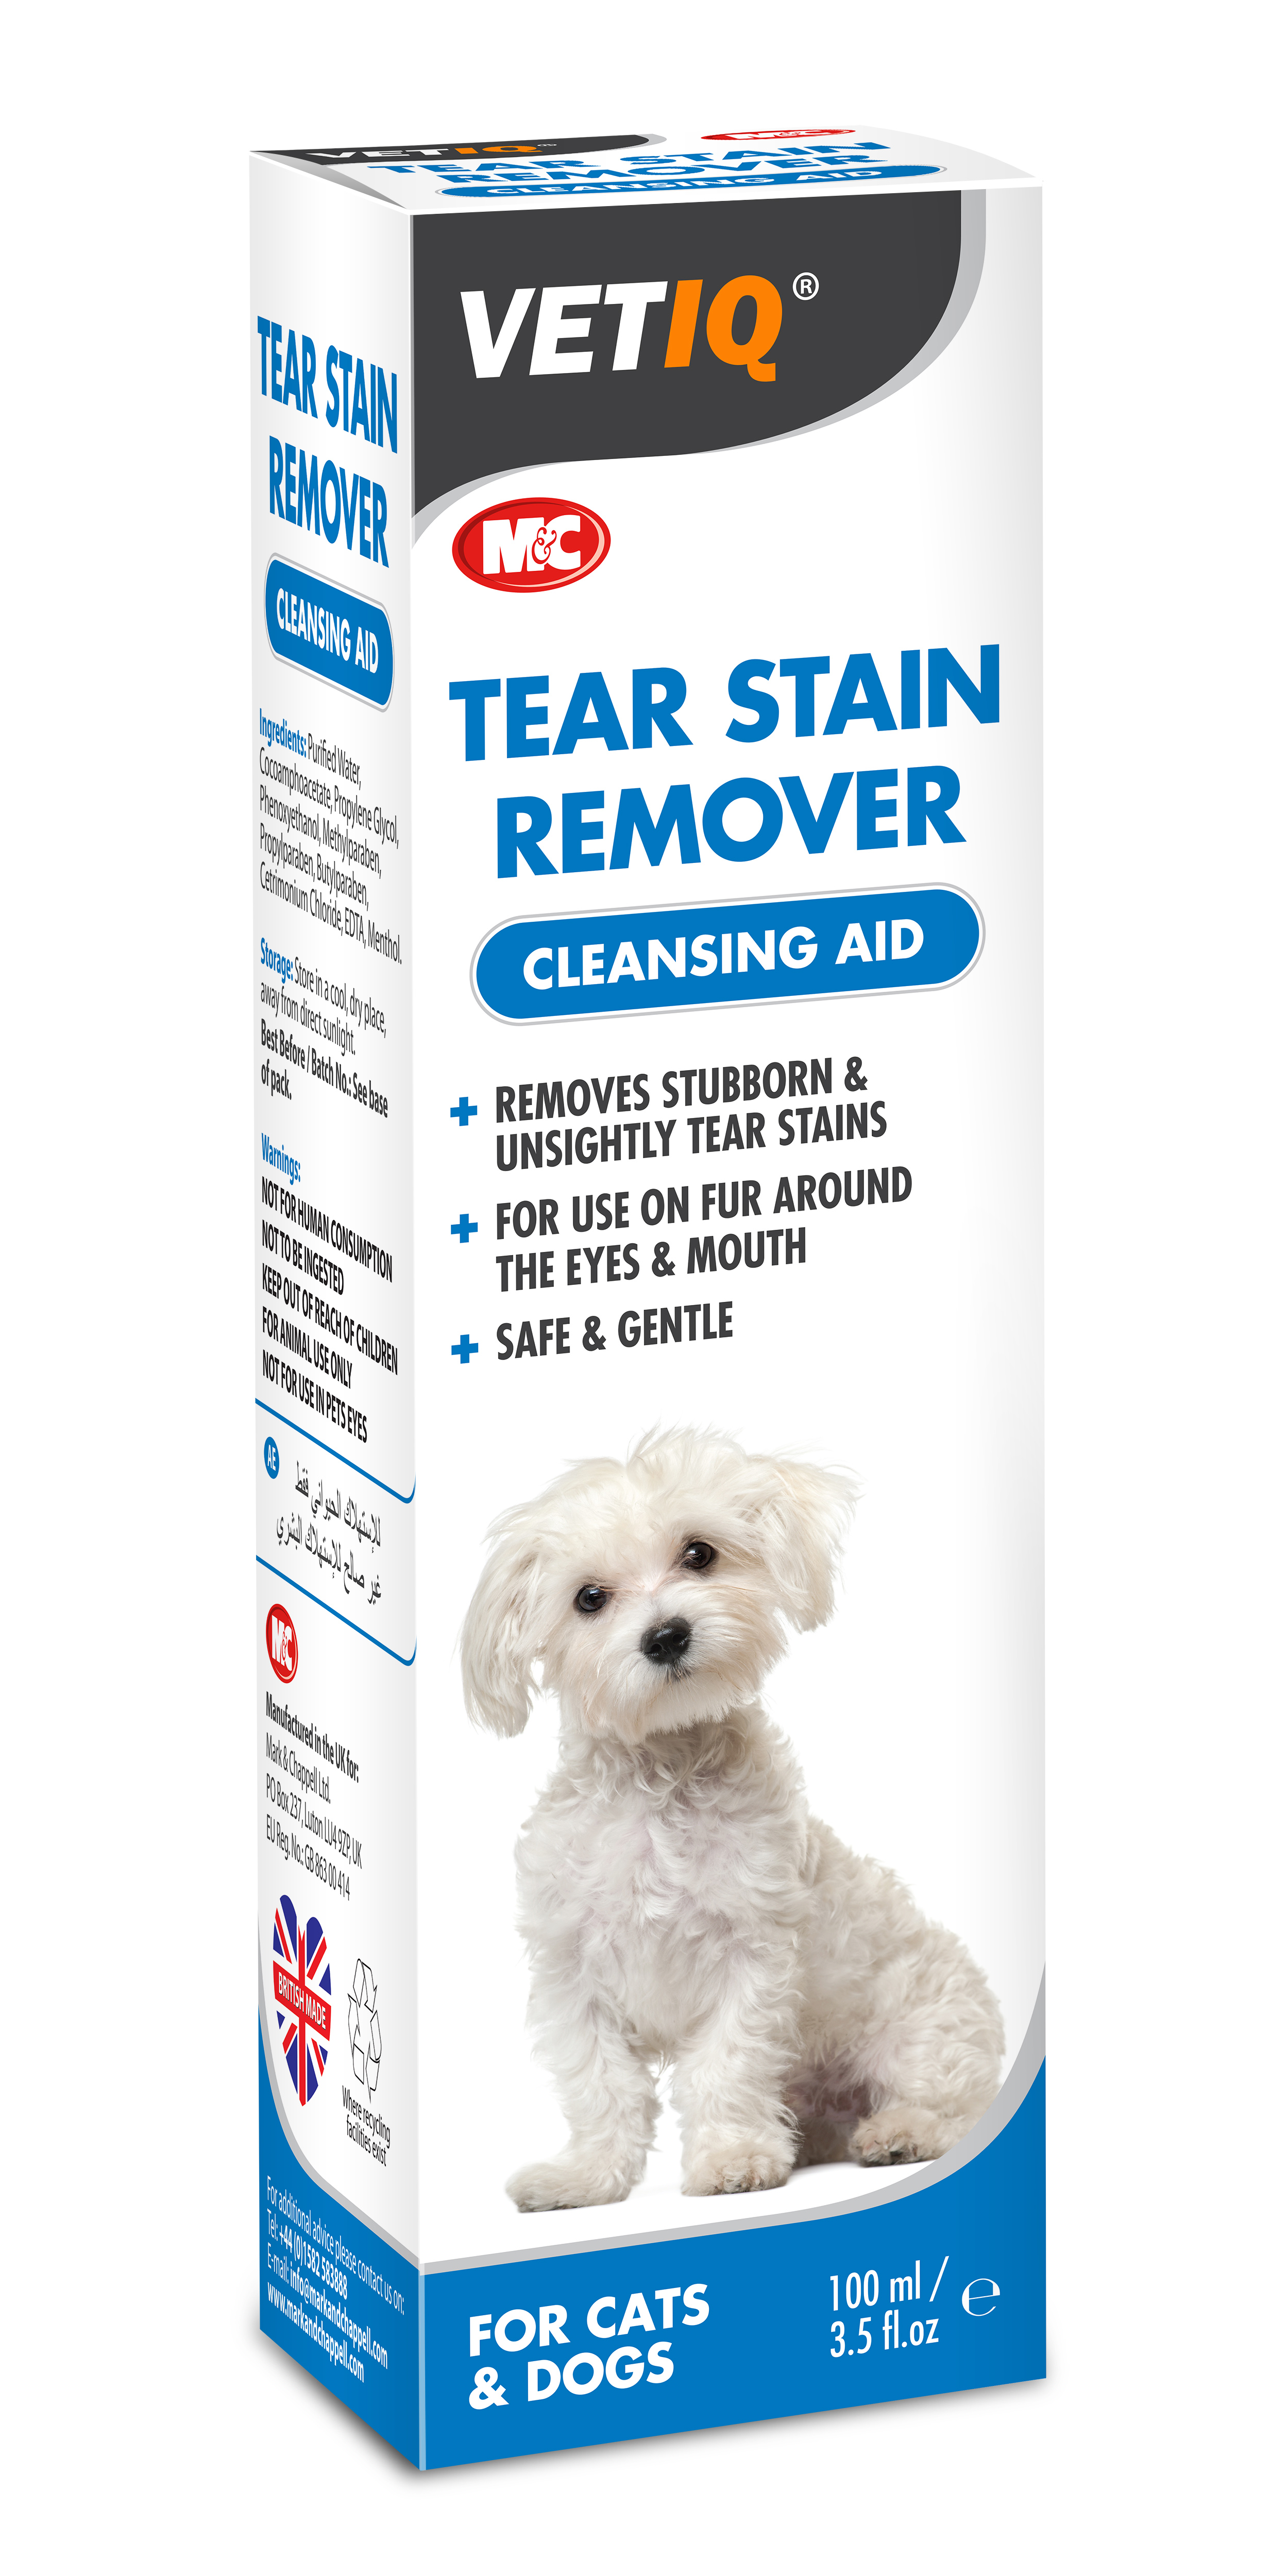 Tear stain remover liquid